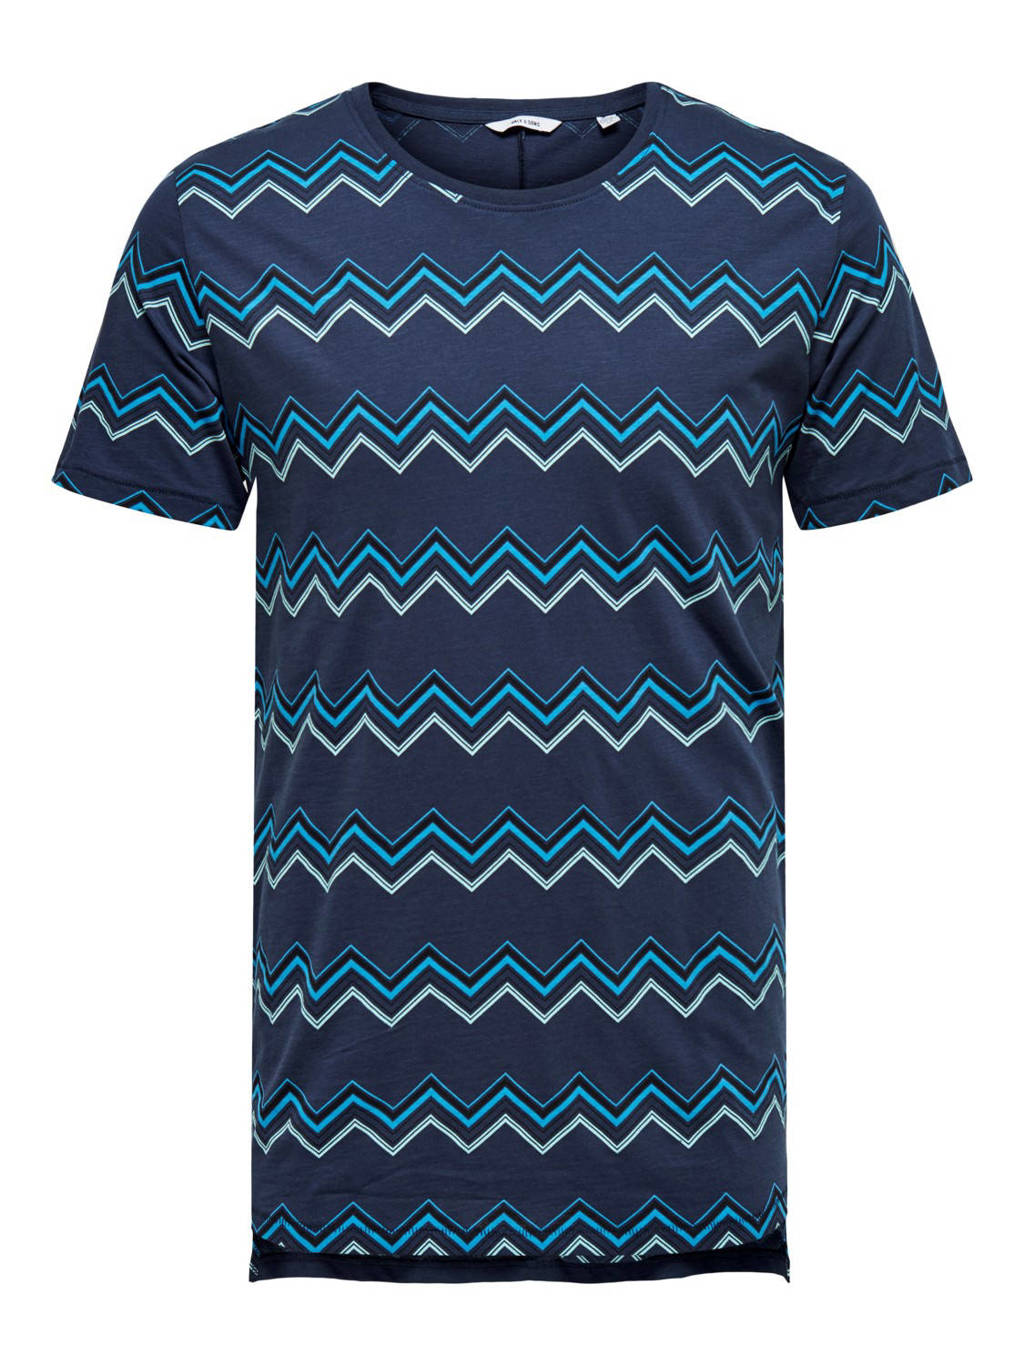 ONLY & SONS T-shirt met all over print blauw, Blauw